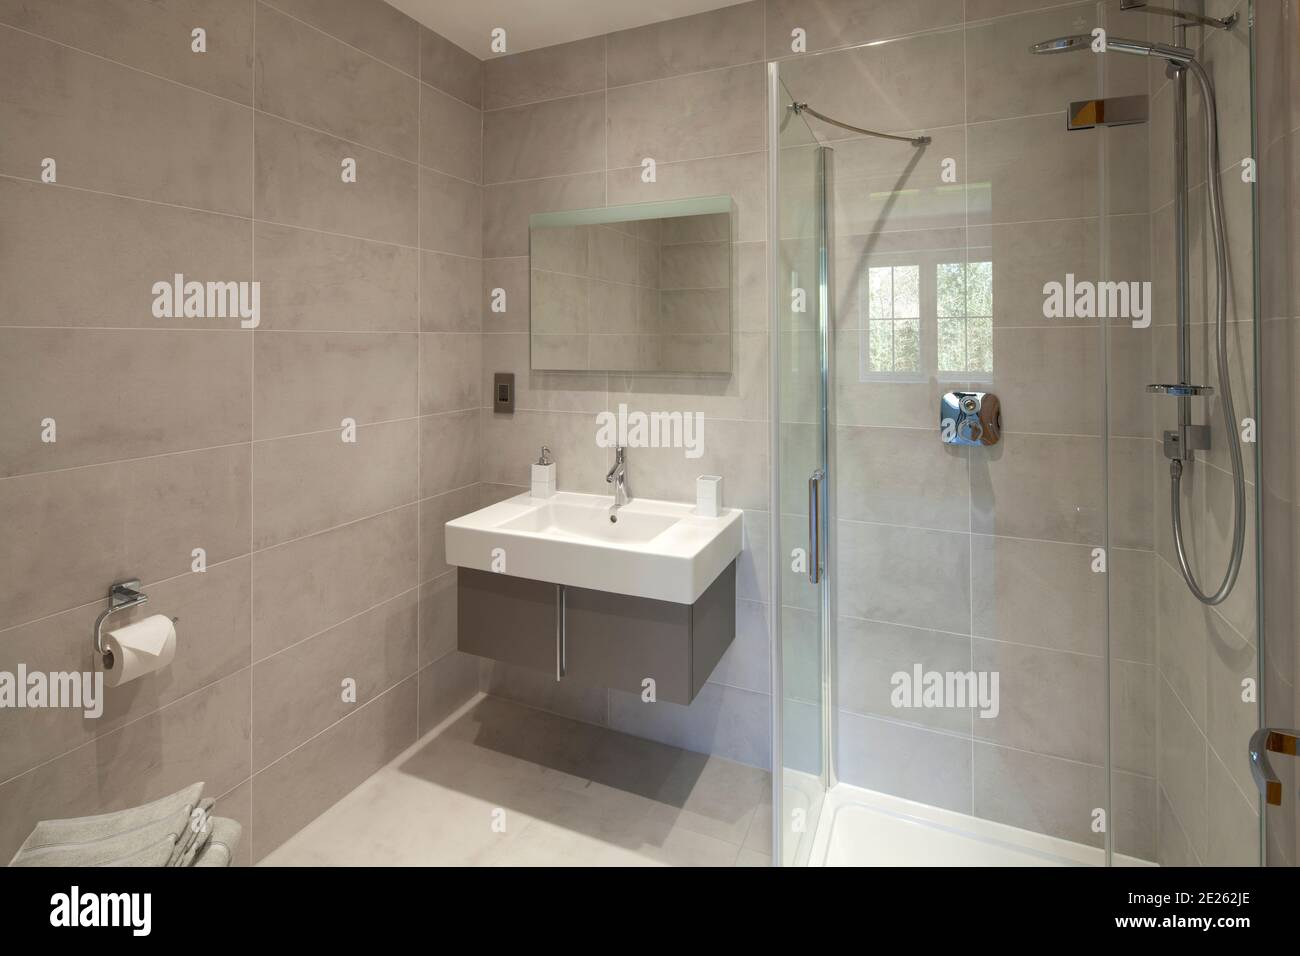 https www alamy com contemporary shower room or bathroom with grey wall tiles white basin and glass shower cubicle image397201574 html